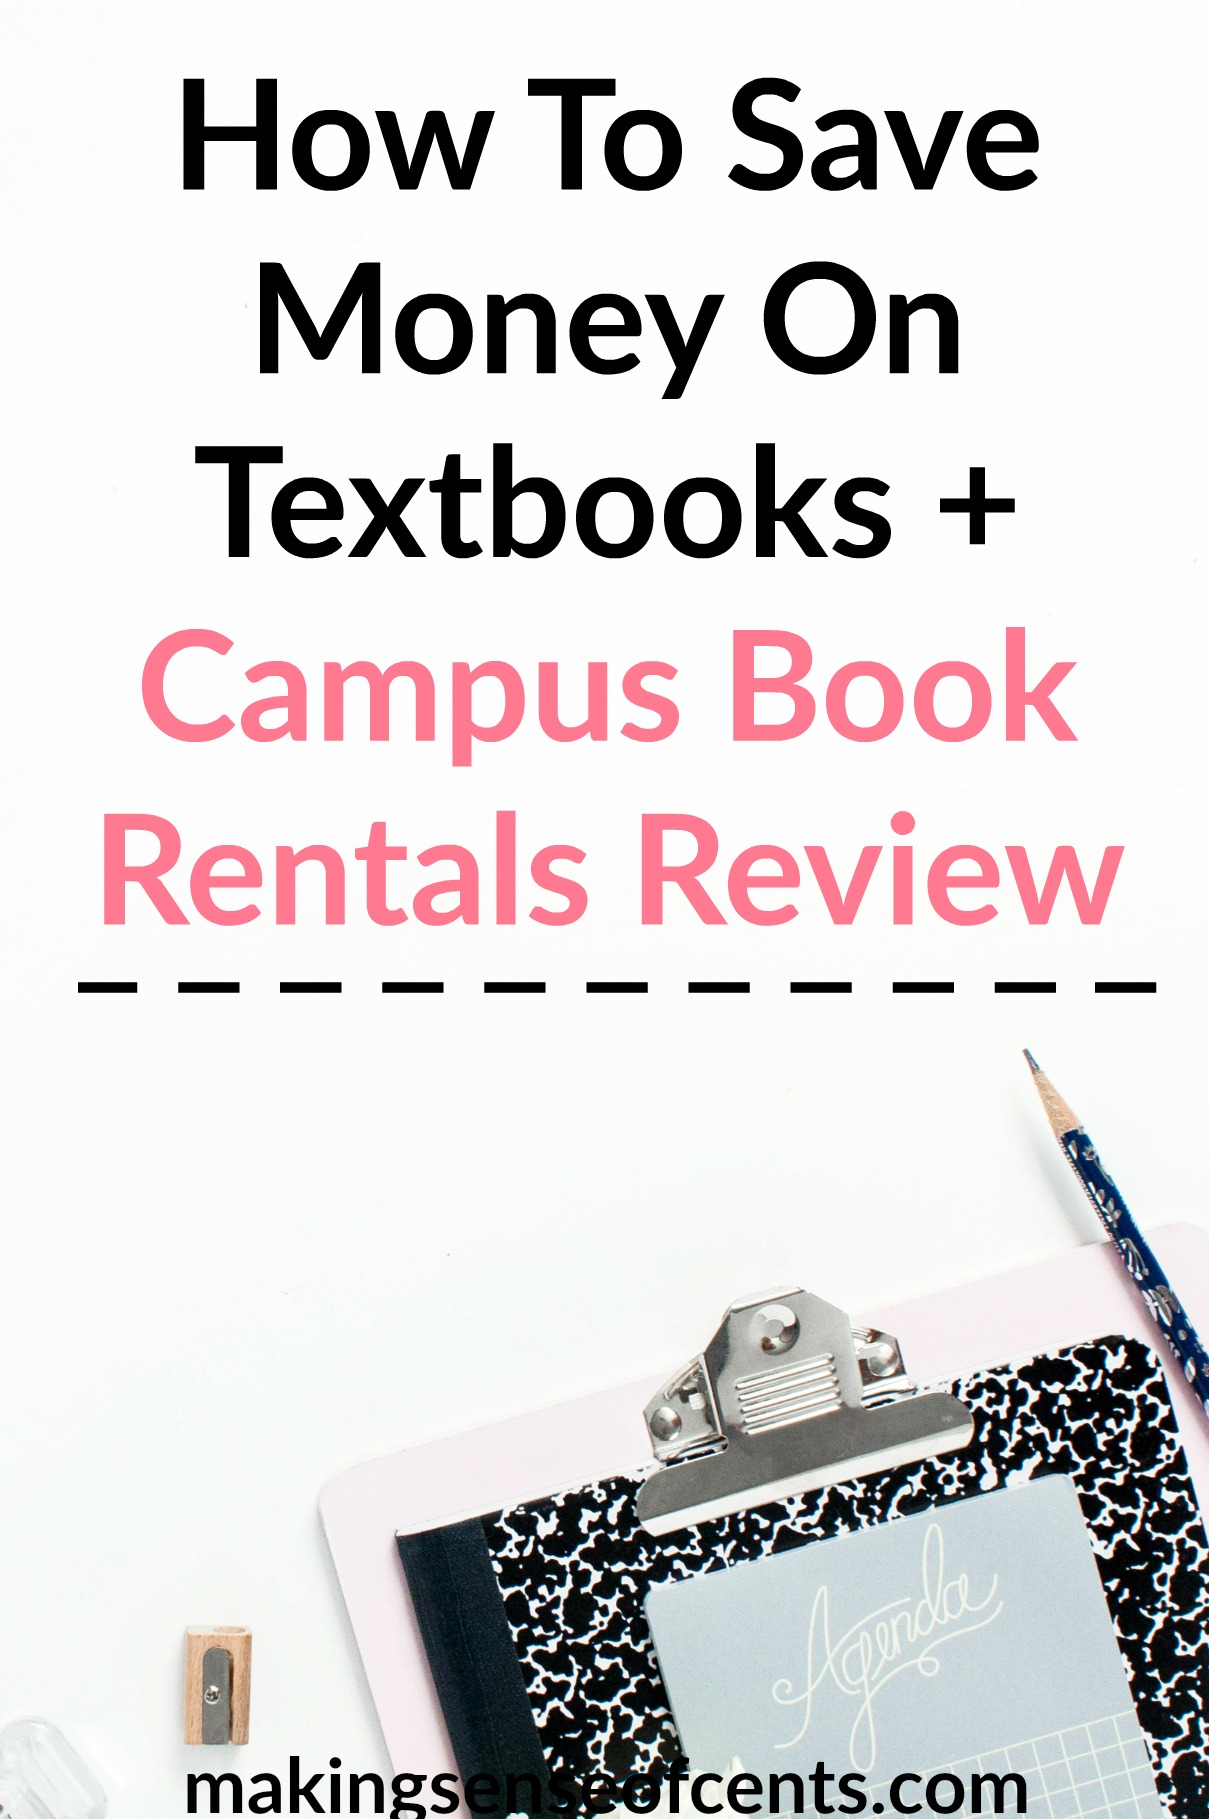 How To Save Money On Textbooks + Campus Book Rentals Review